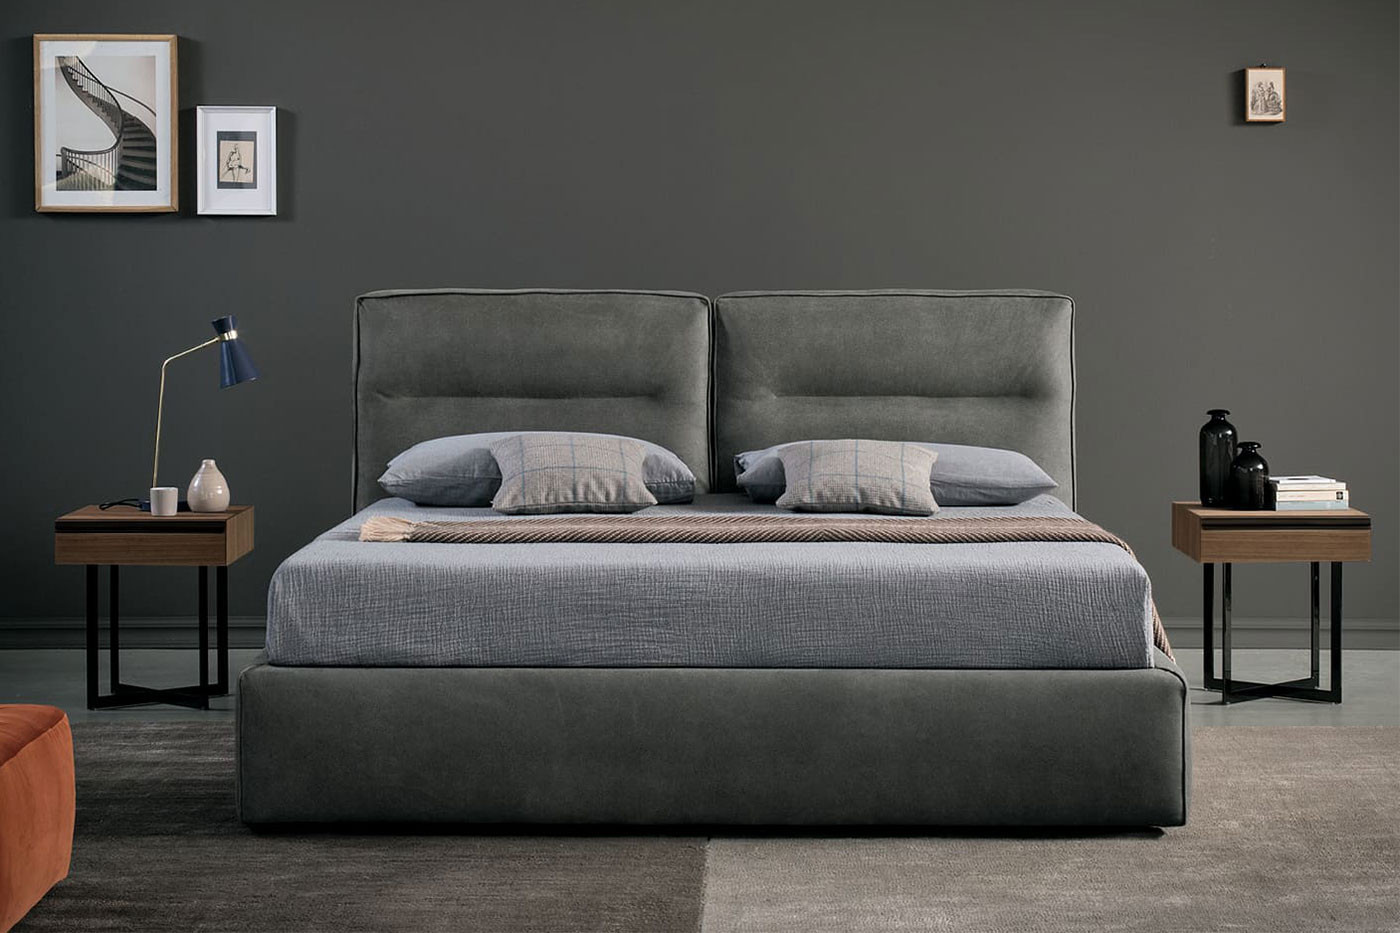 Upholstered king size pillow headboard bed available in size 160x200 cm, 180x200 cm or 200x200 cm